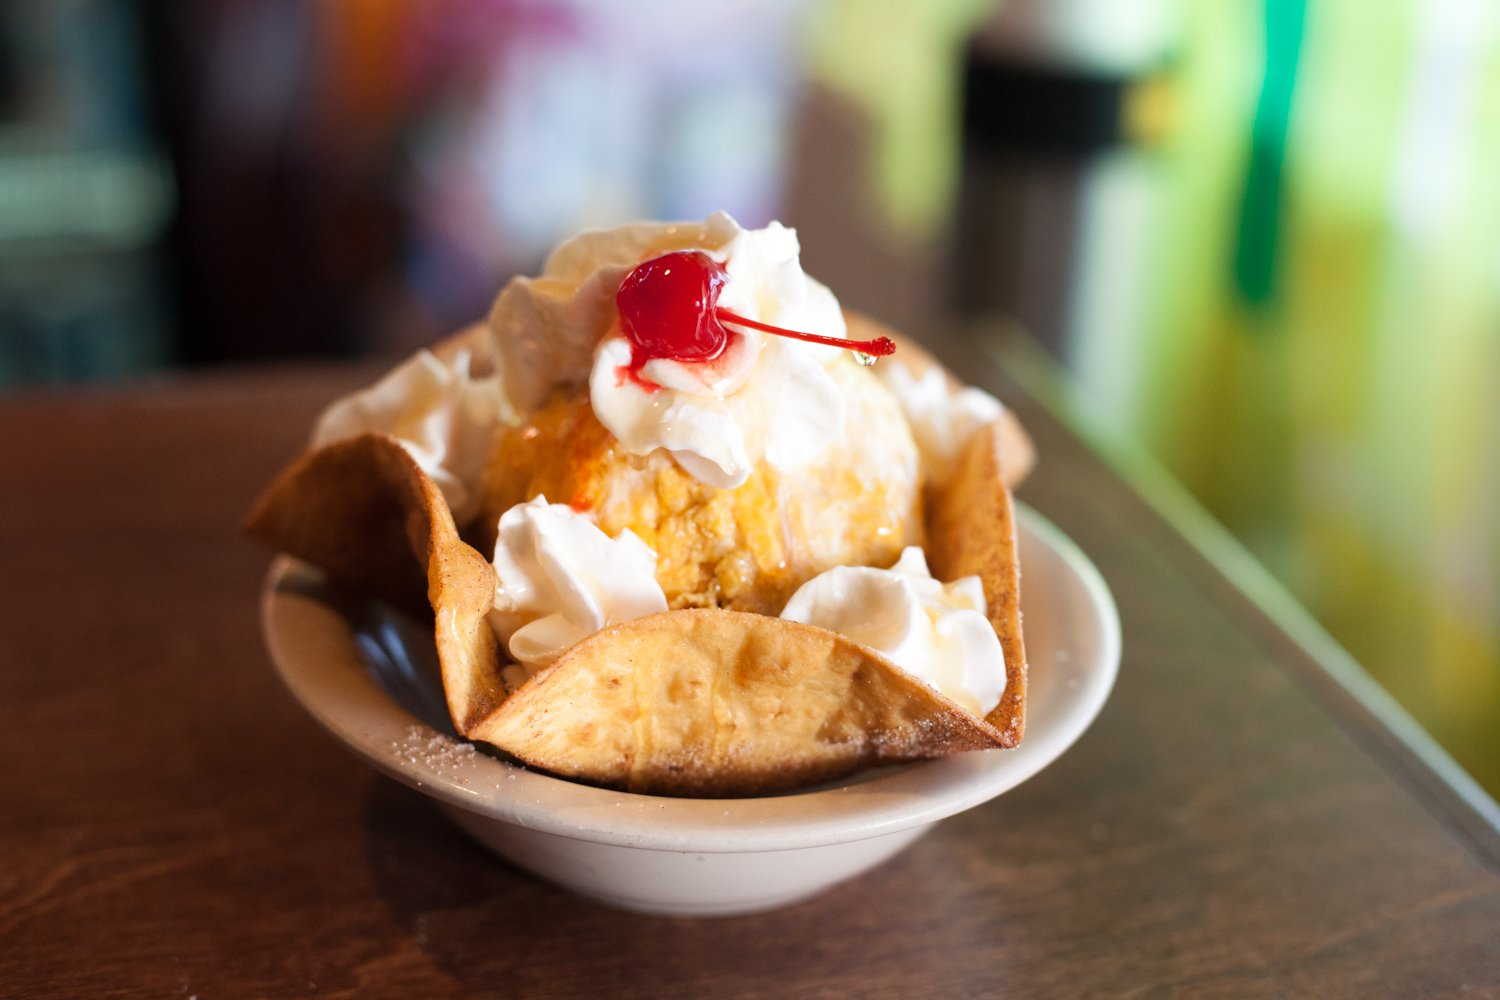 Cozumel Grill Mexican Restaurant fried ice cream